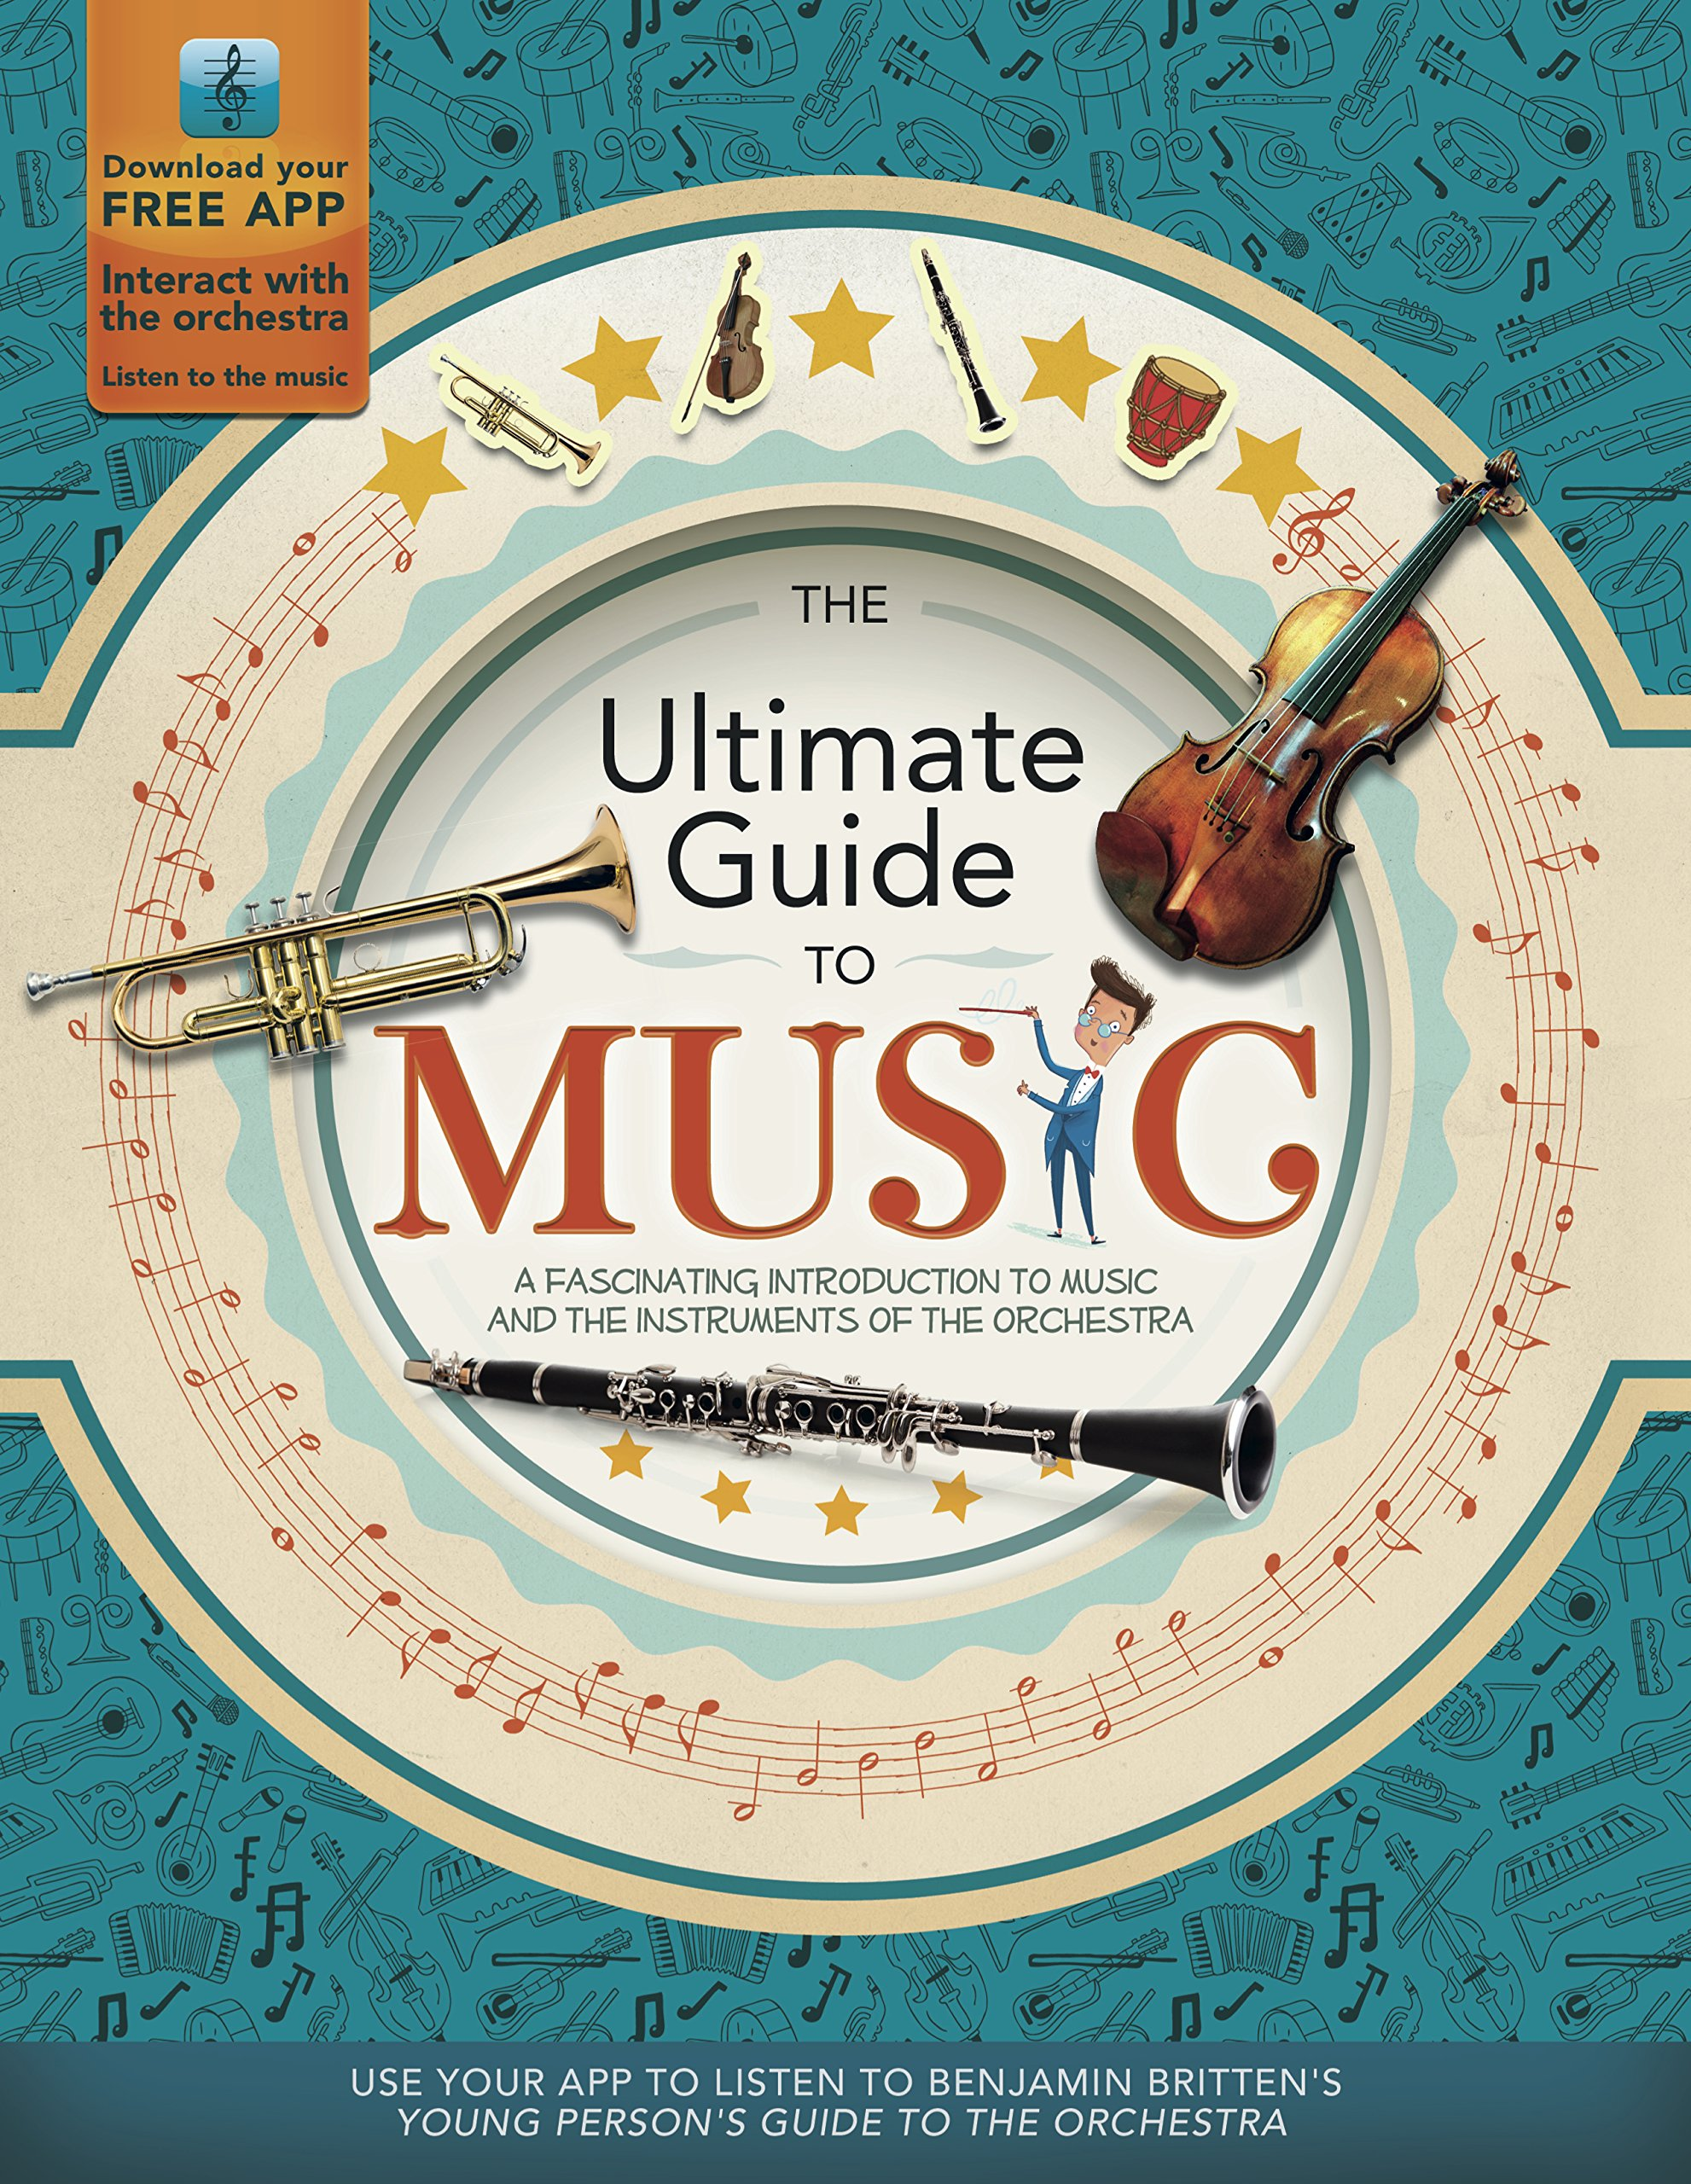 Ultimate Guide Music Fascinating Introduction product image